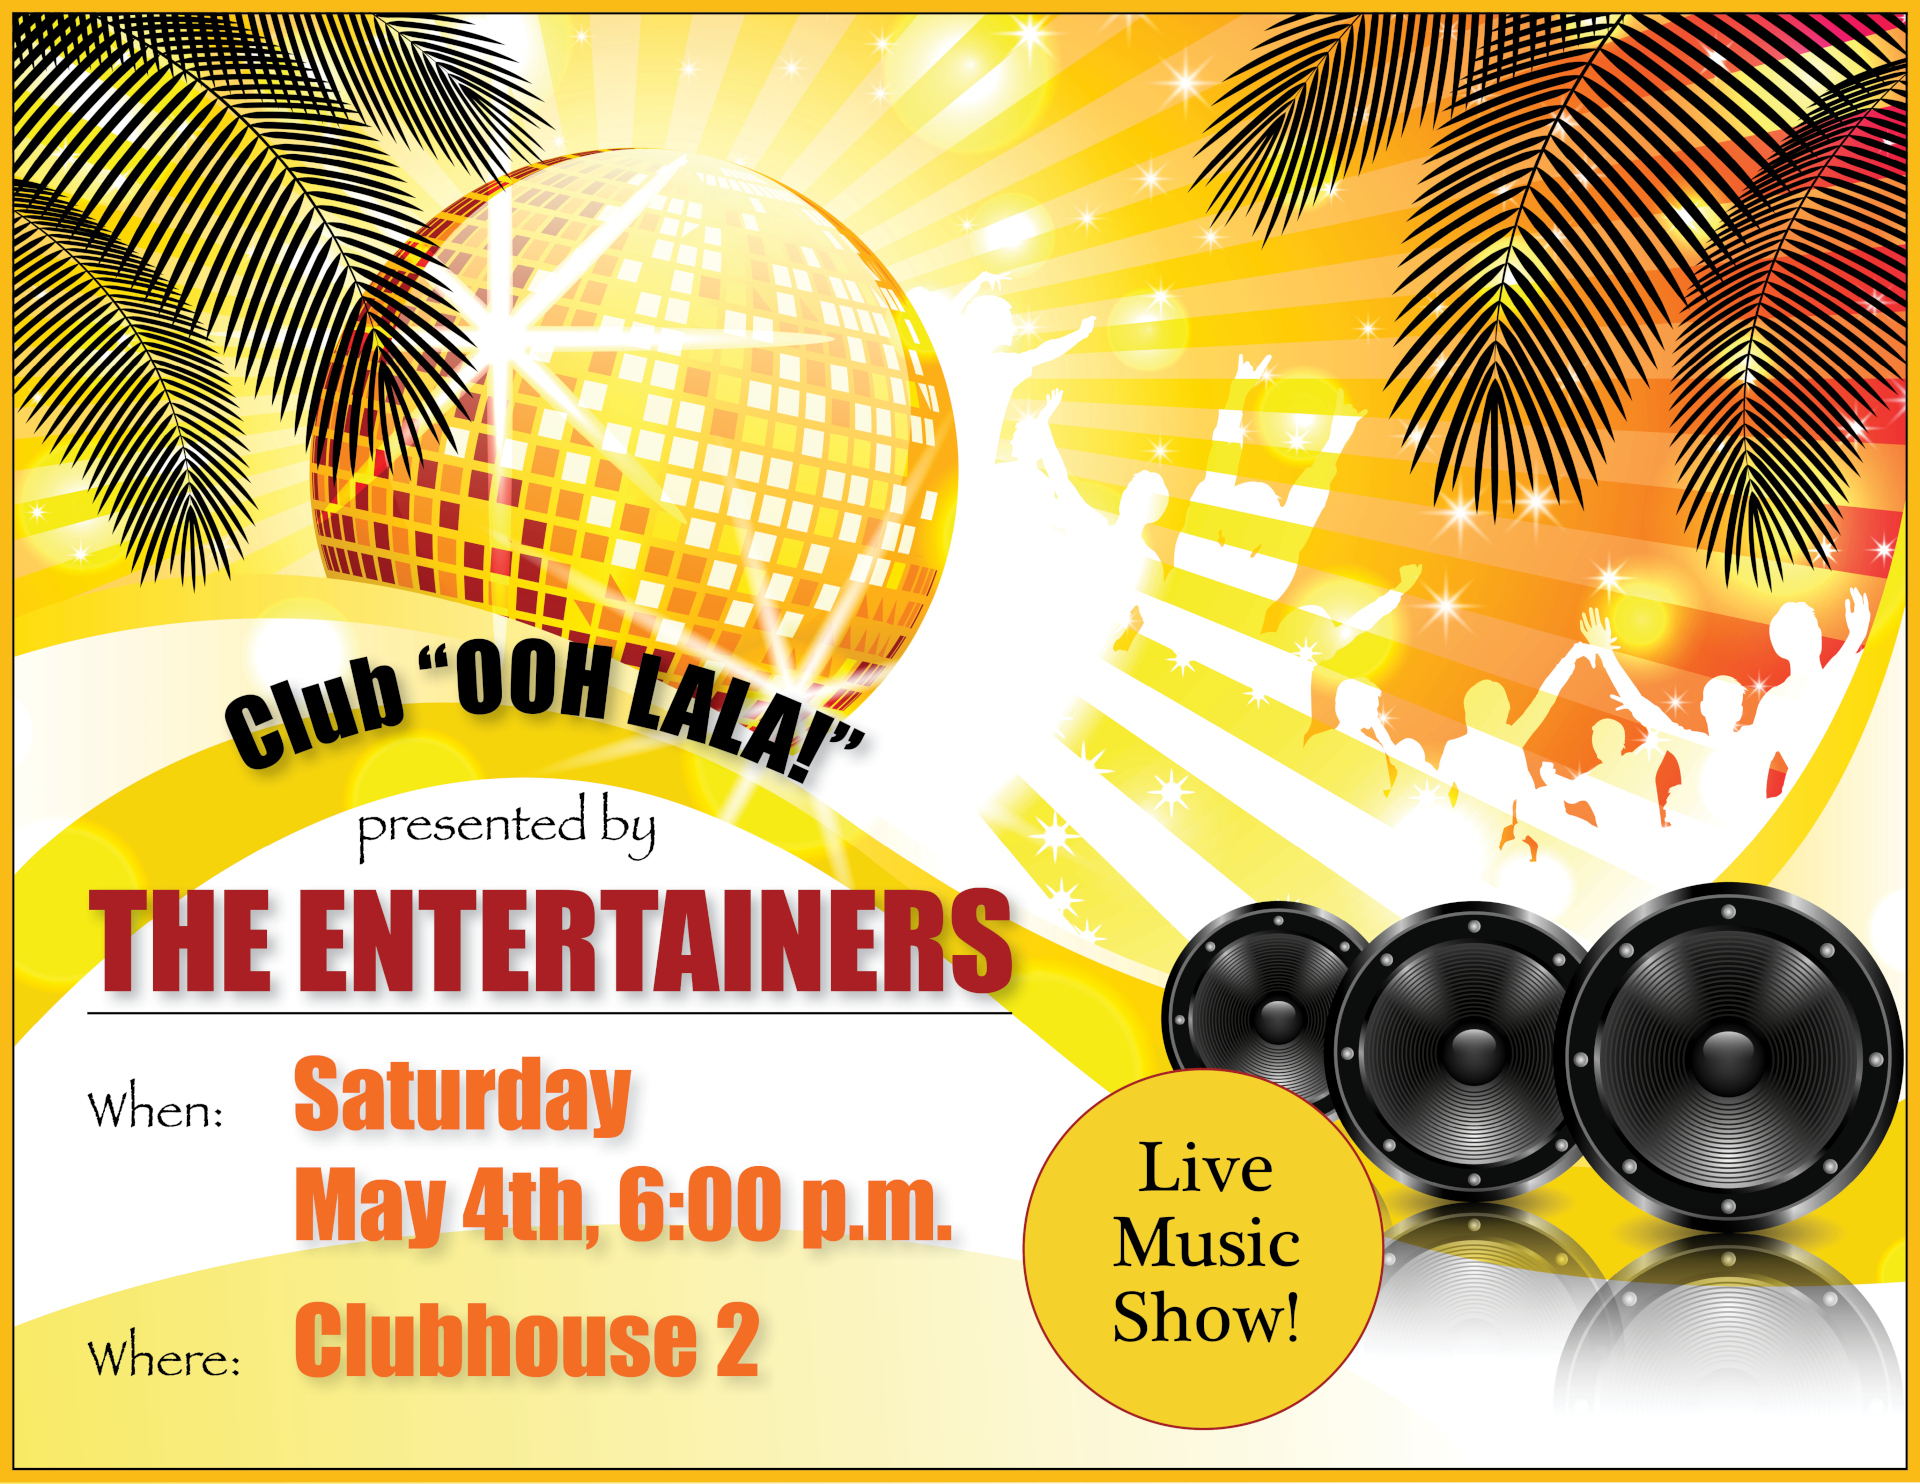 The entertainers flyer 05/04